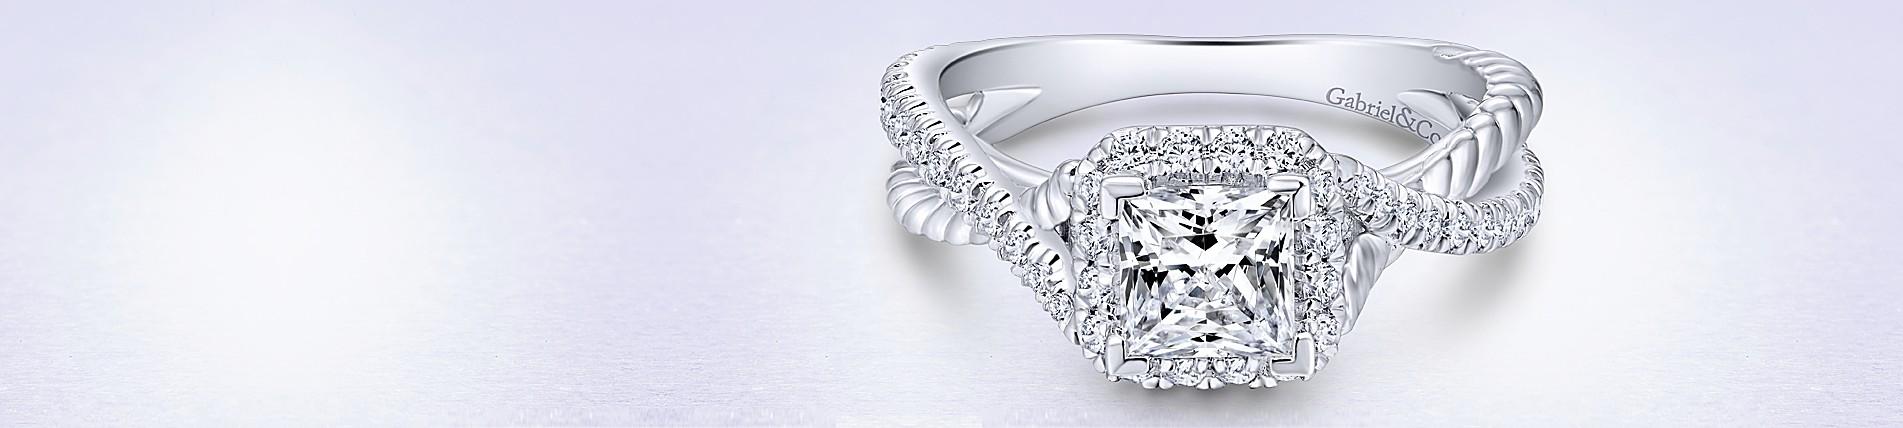 princess bands beautiful square cut diamond hd full download size and princes wedding rings unique engagement inspirational